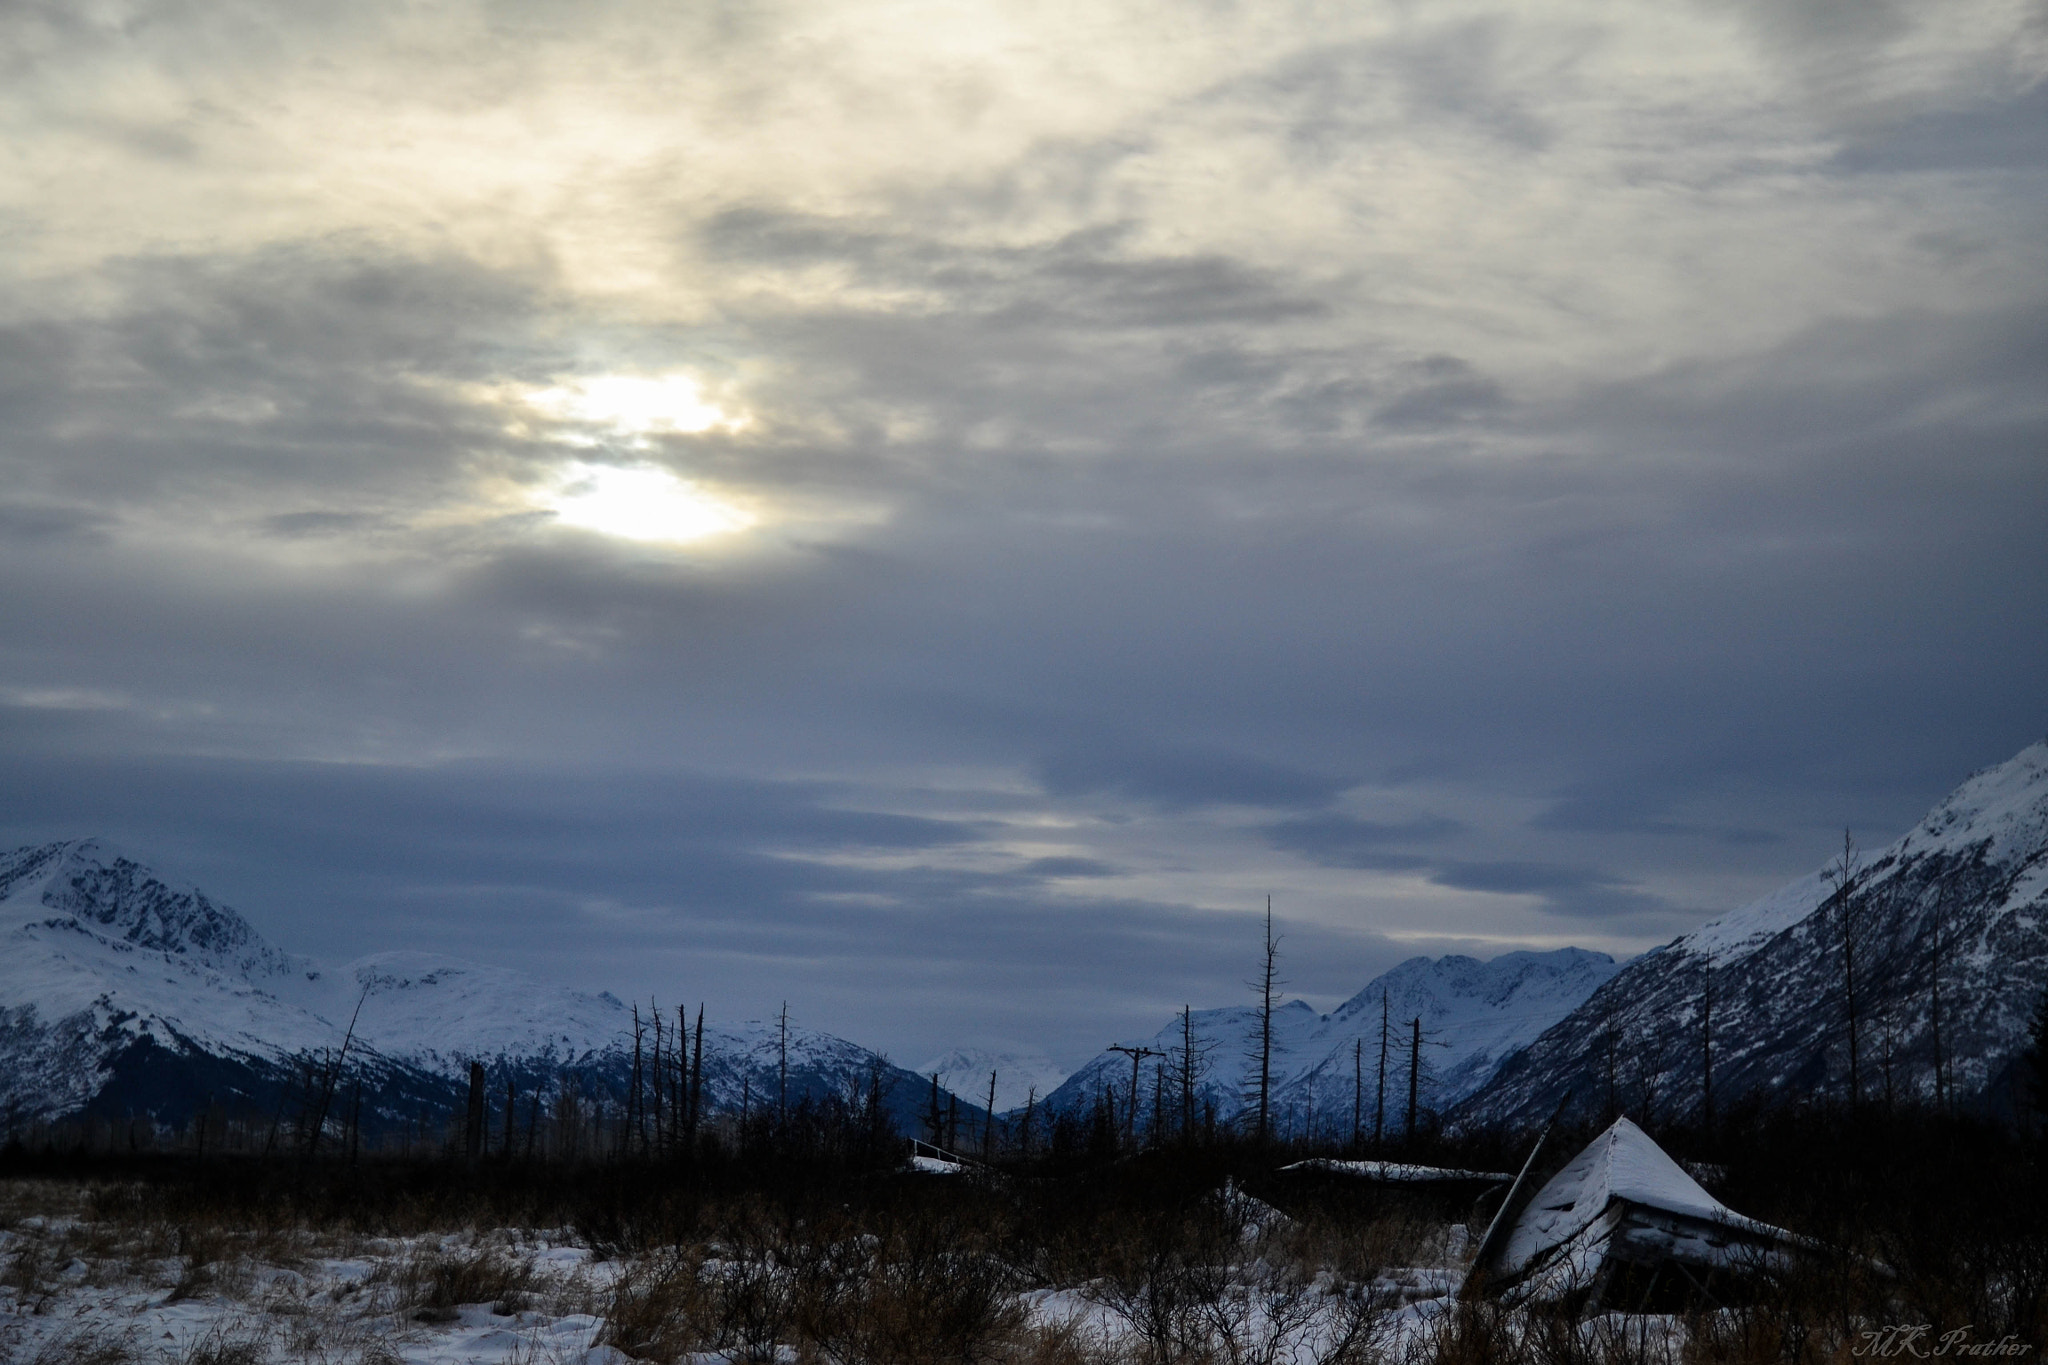 Photograph Chugach State Park by mary-kate prather on 500px